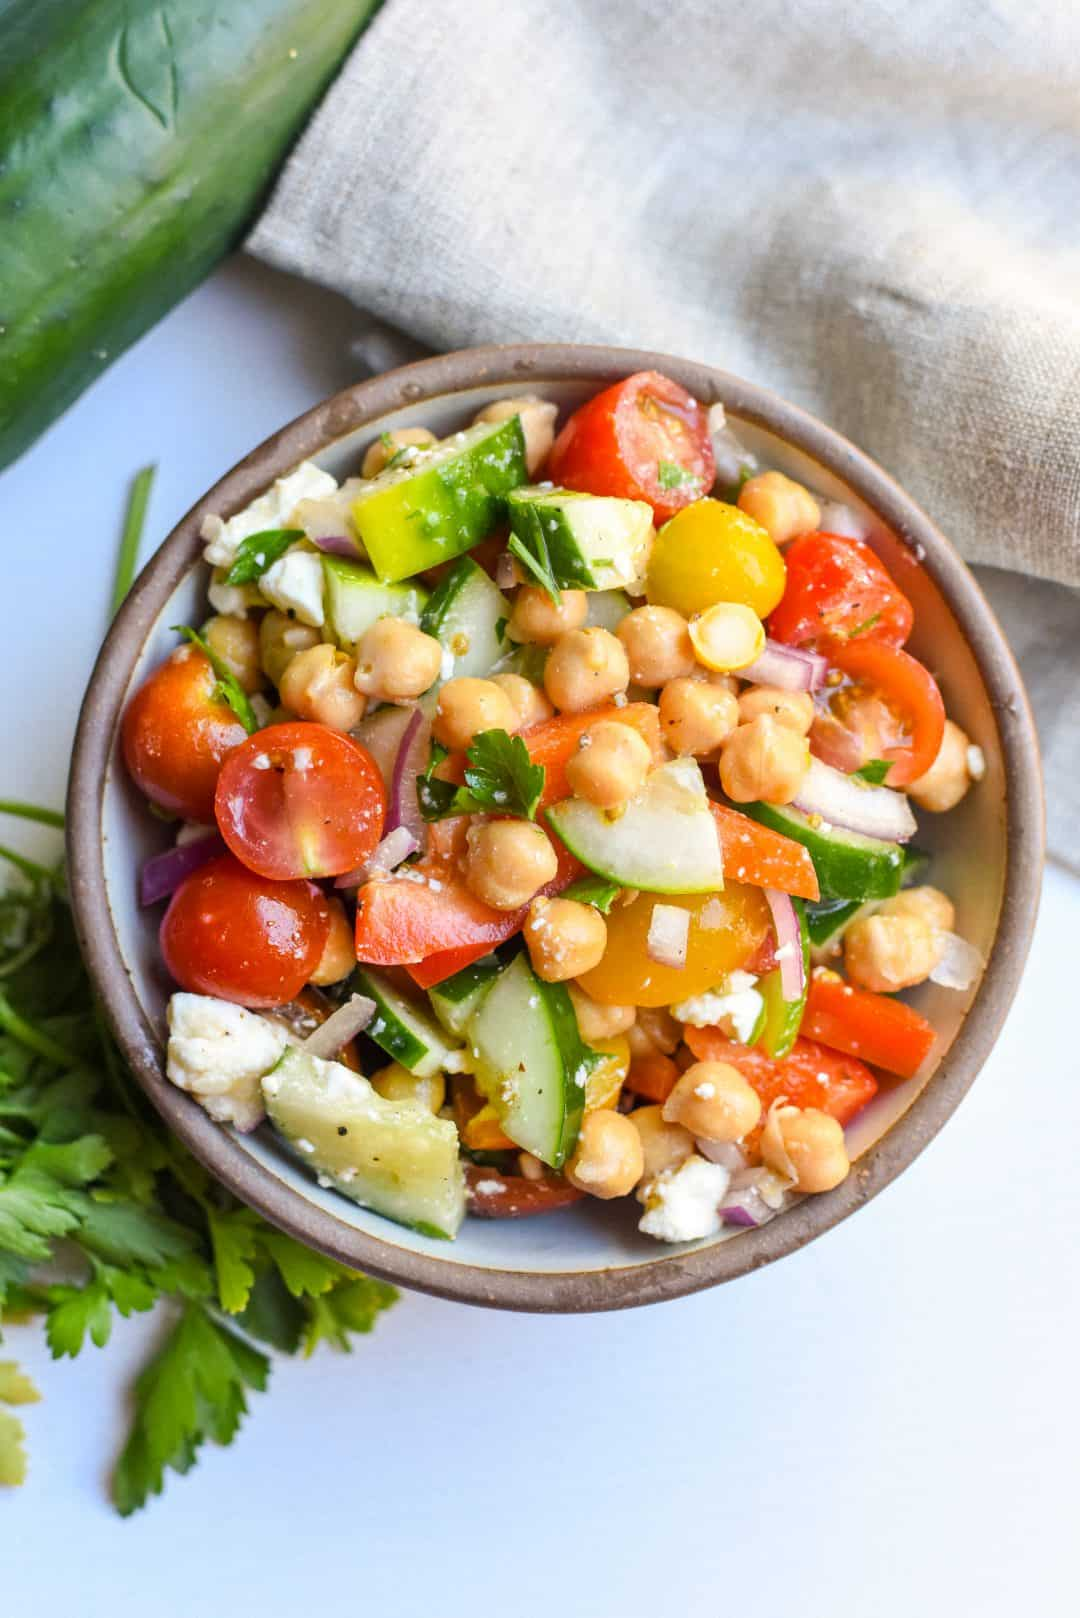 Simple Mediterranean Chickpea Salad